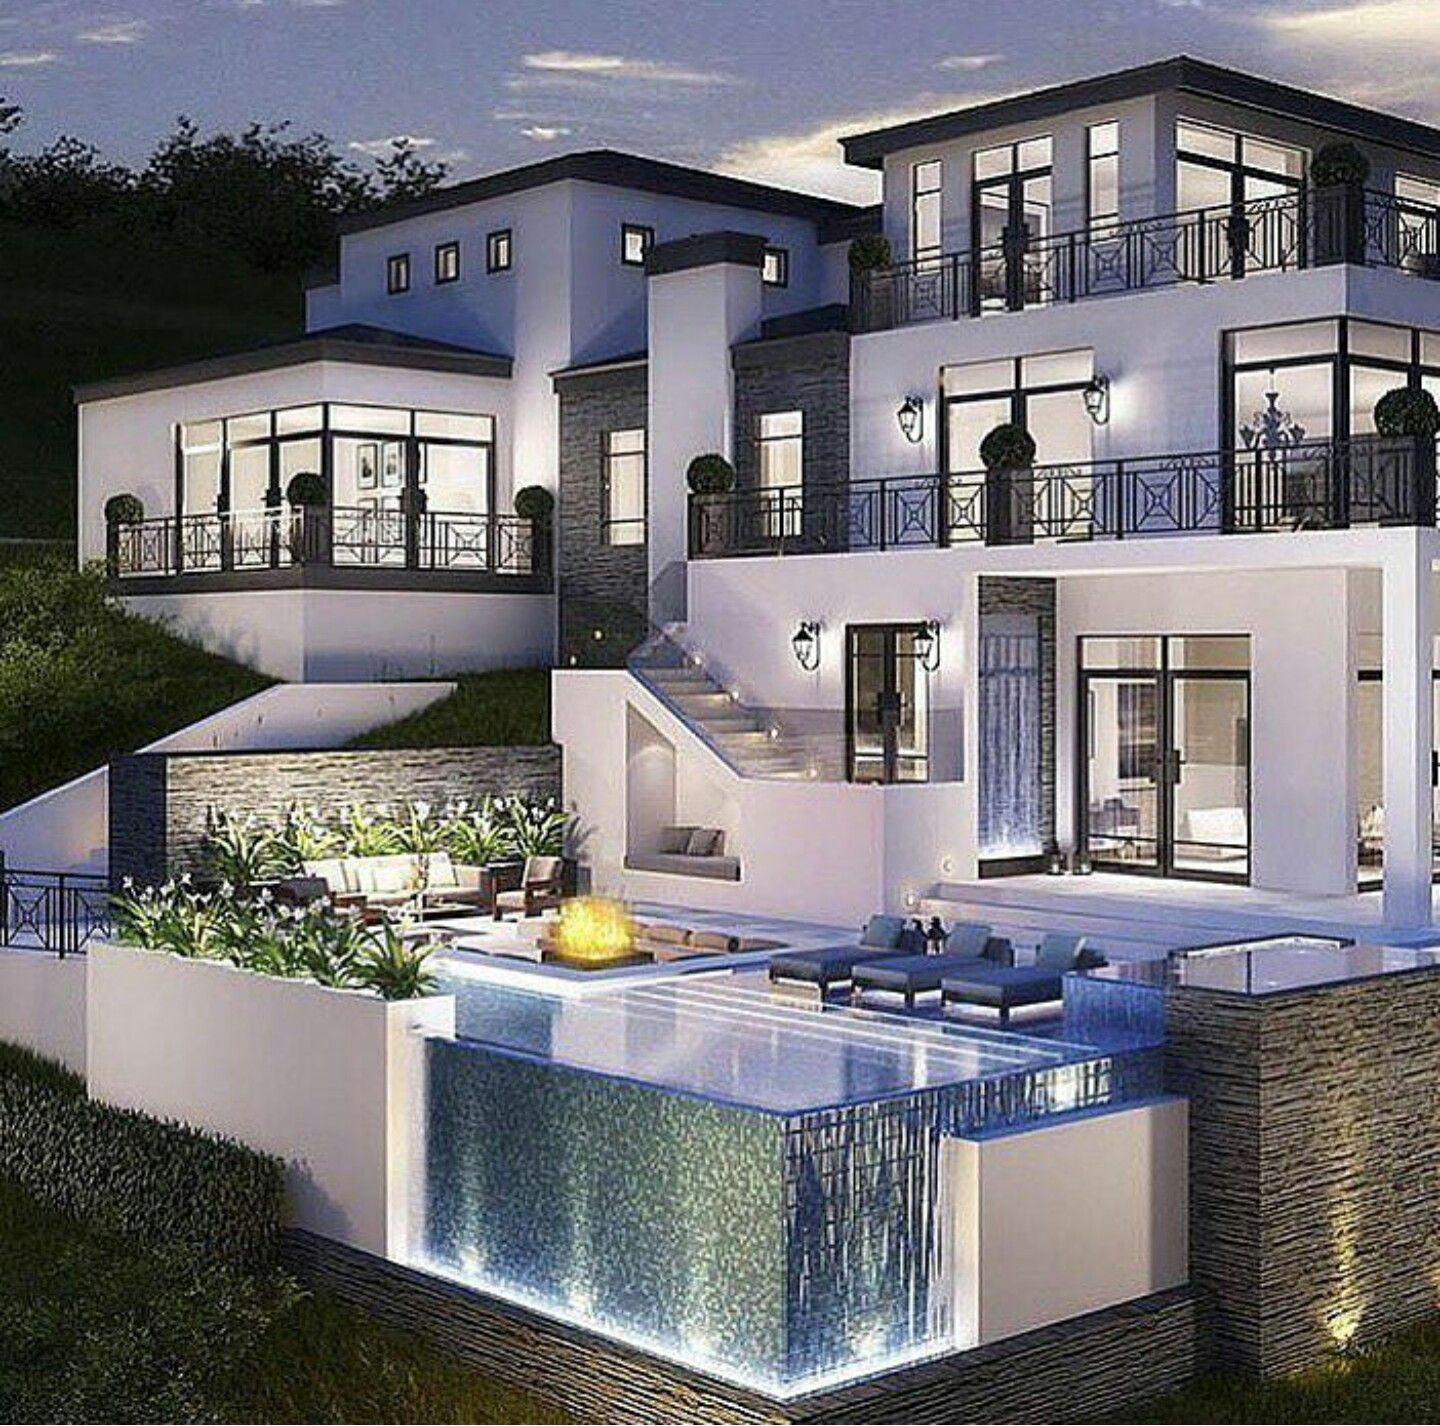 Amazing Los Angeles Hollywood Hills Mansion With Infinity